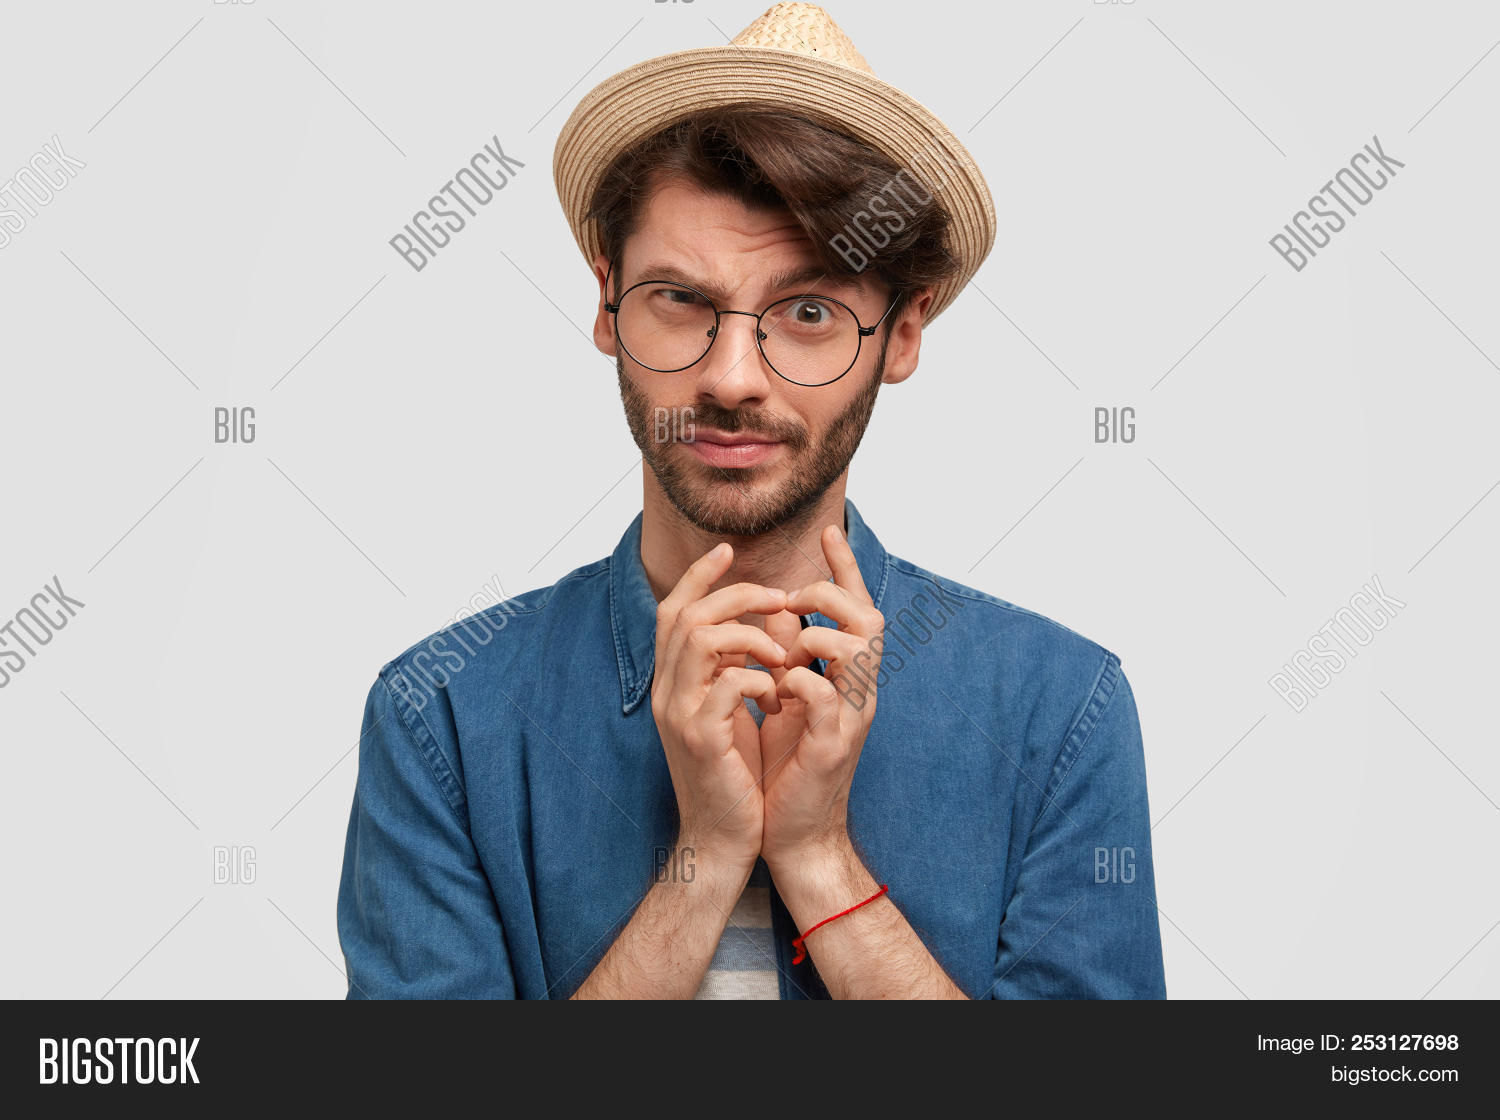 Attractive Bearded Male Keeps Hands Together And Looks With